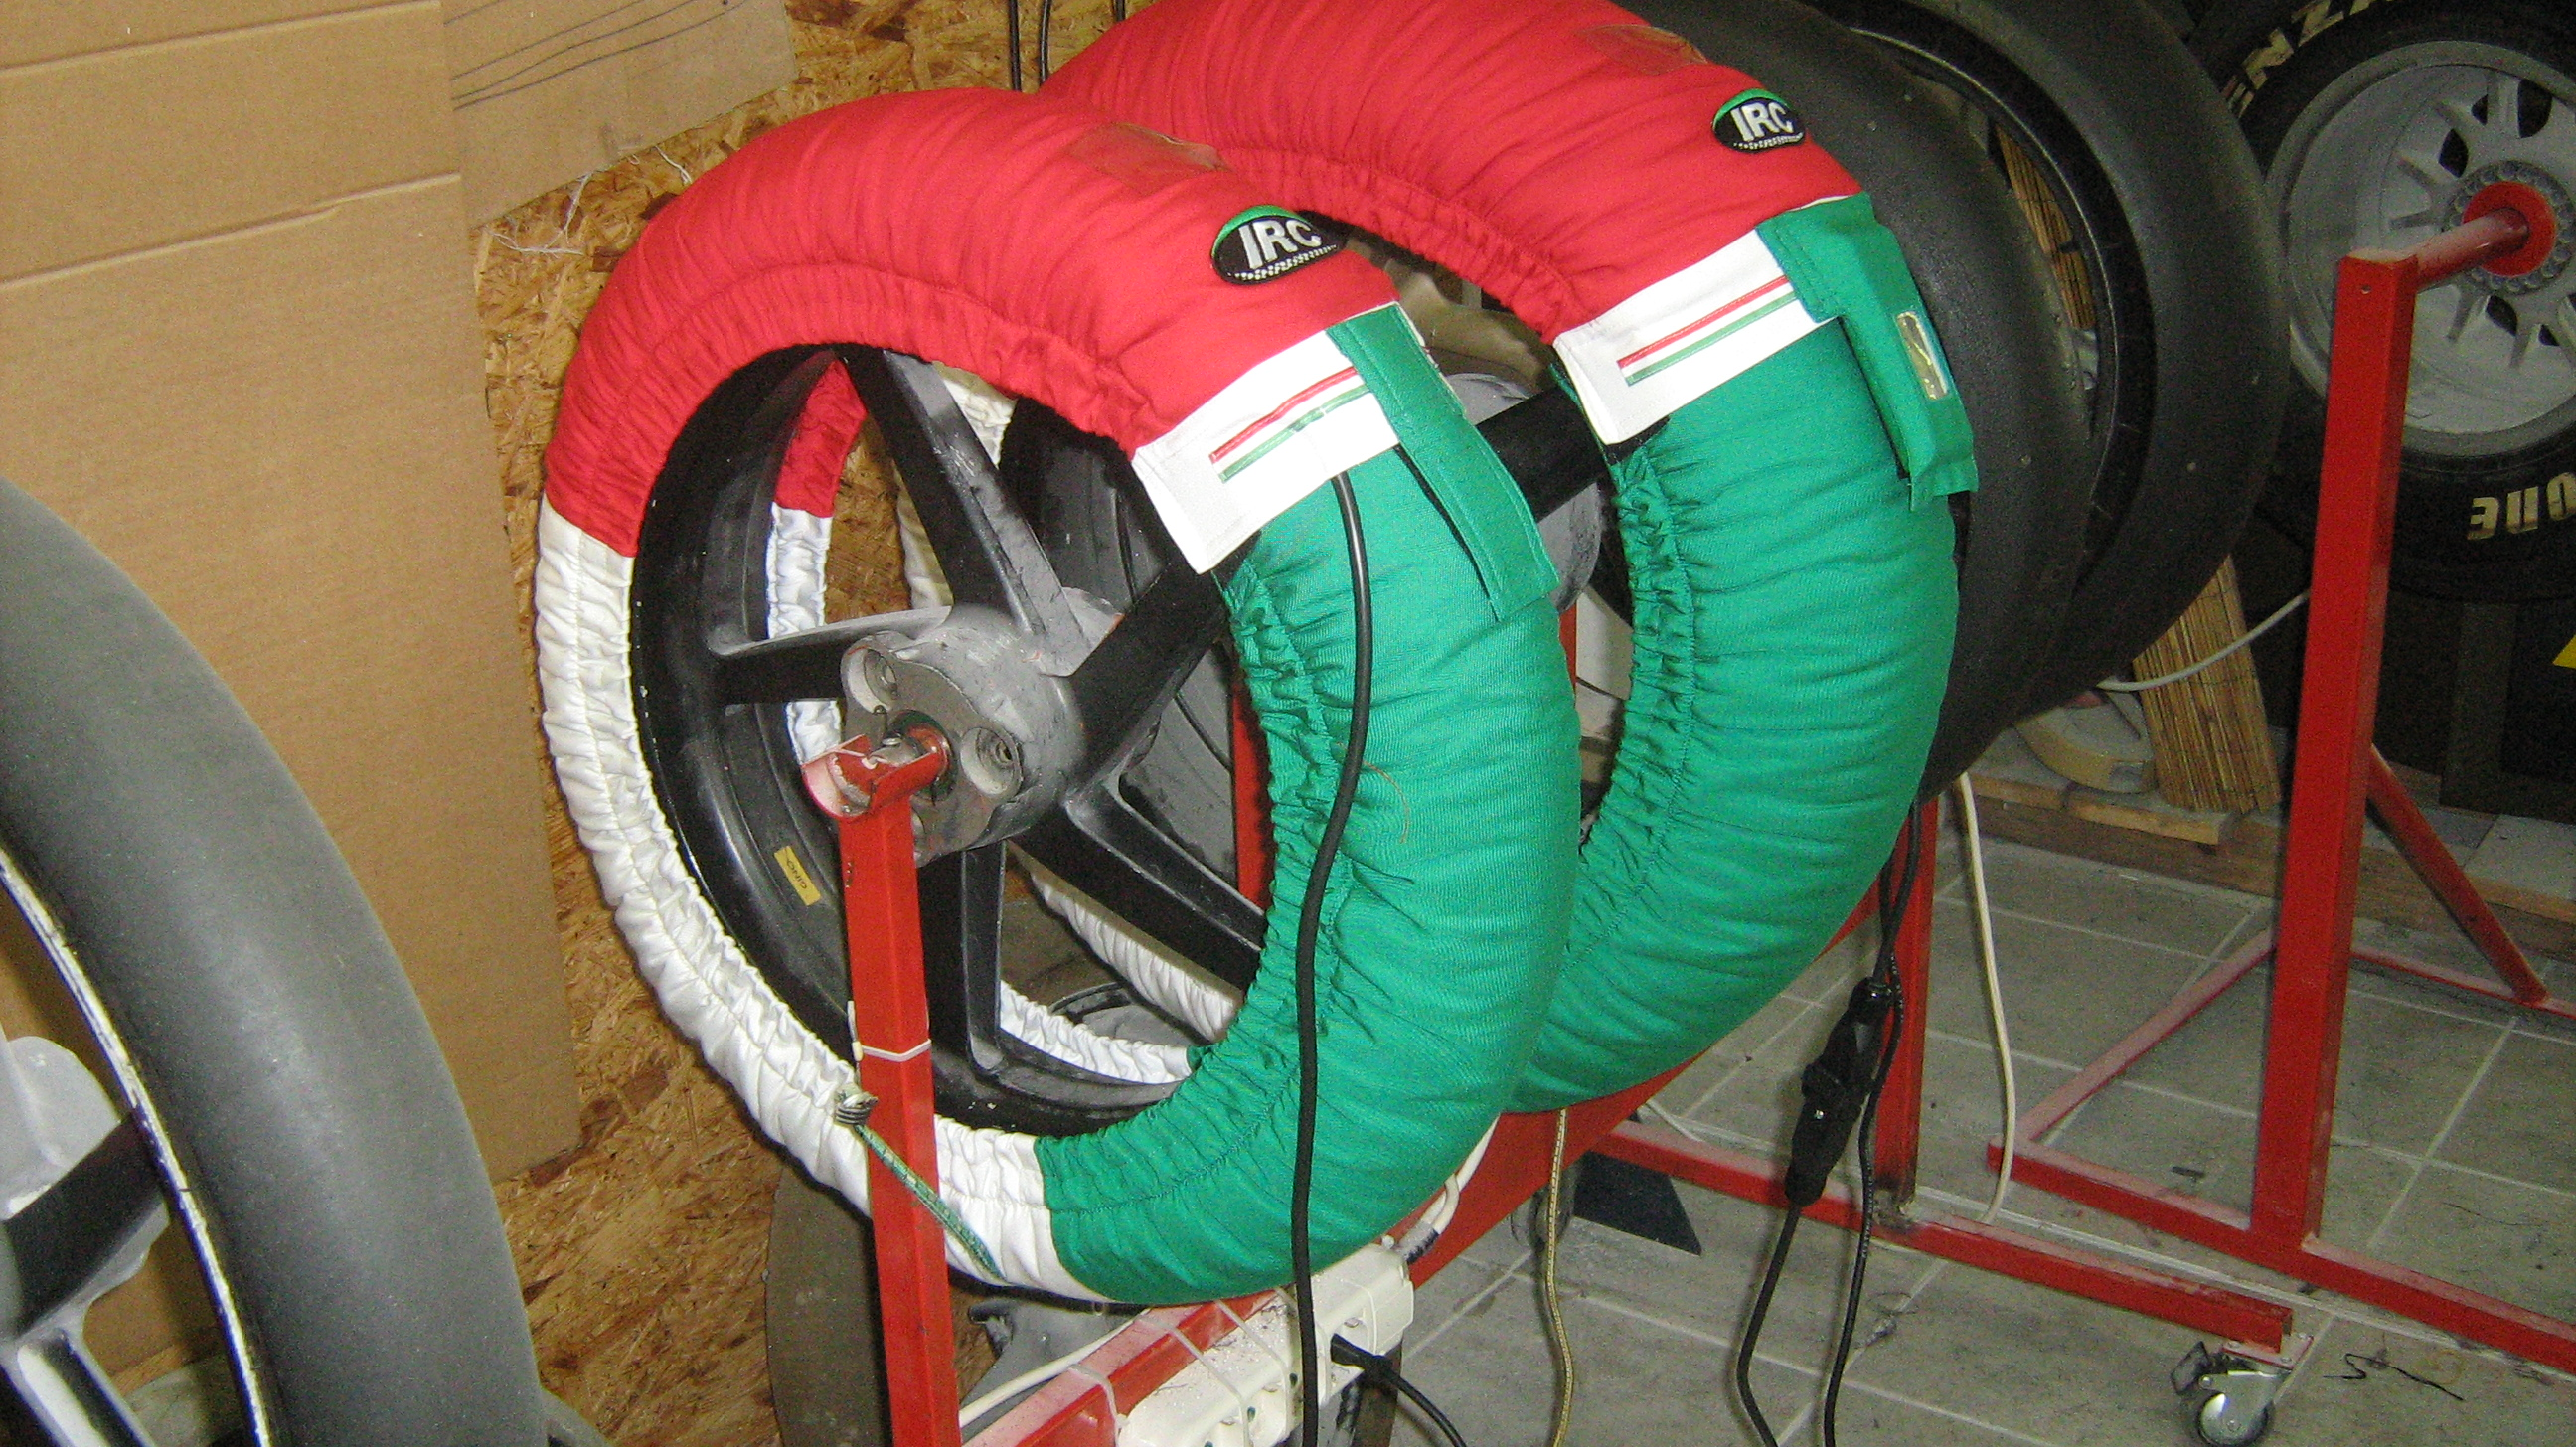 Irc Tire Warmers Irc Tri-colour Tyre Warmers